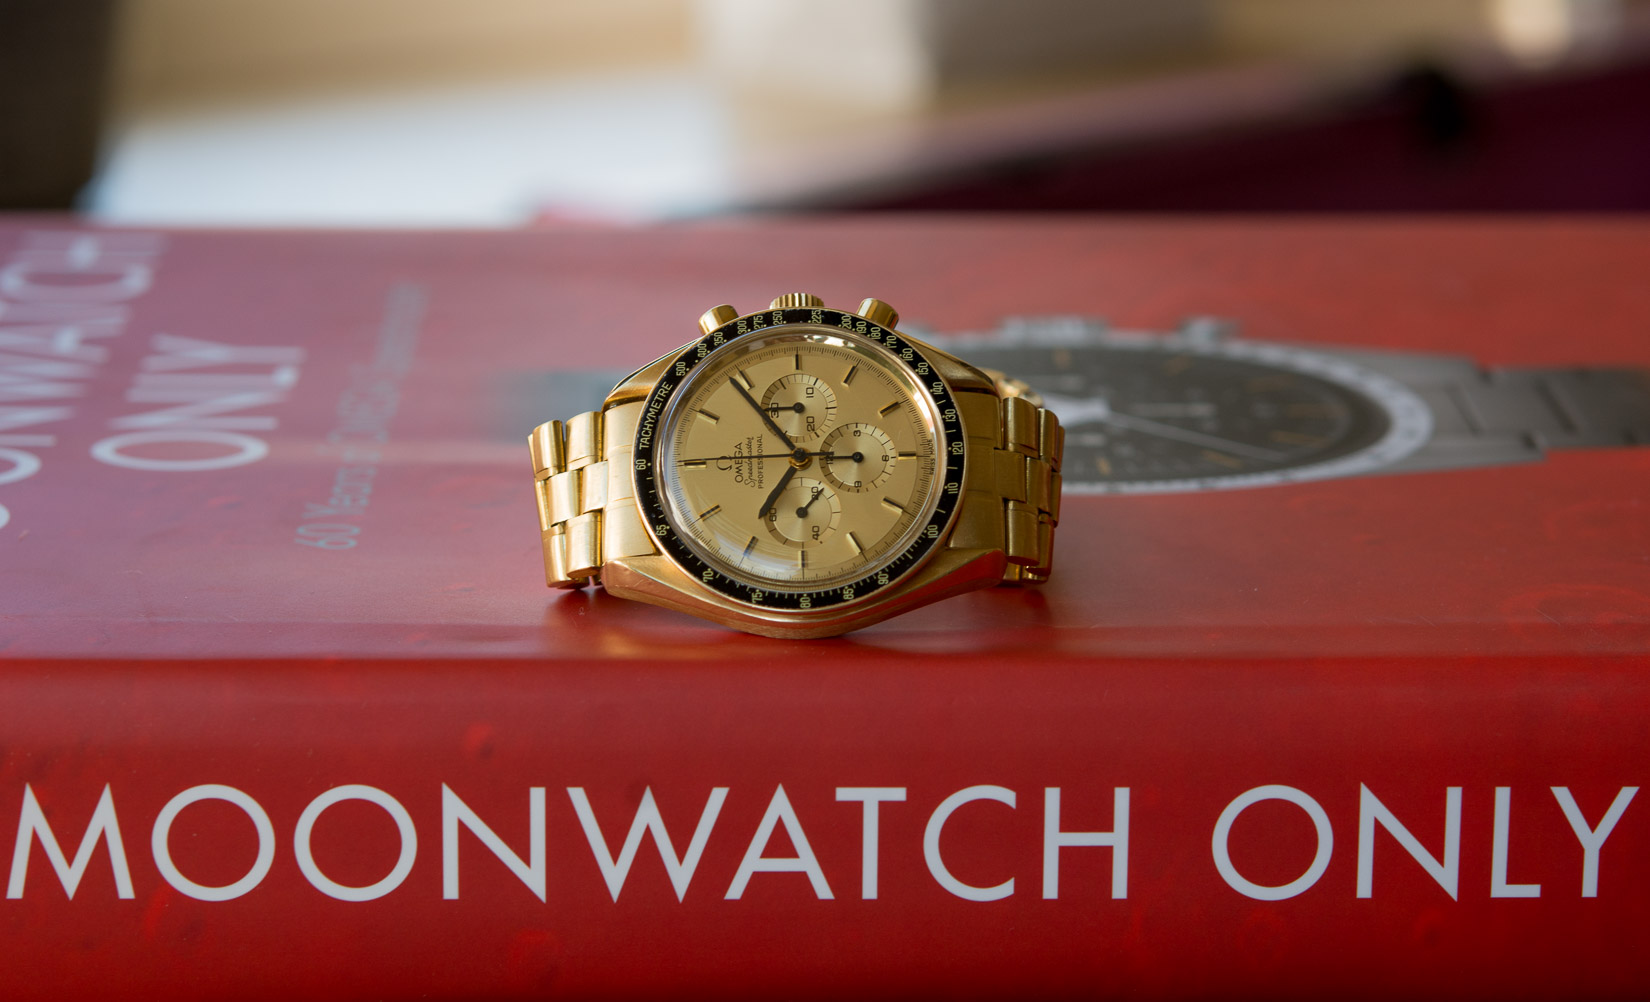 TOP 5 WATCH BOOKS RANKING <br> BY FRATELLOWATCHES